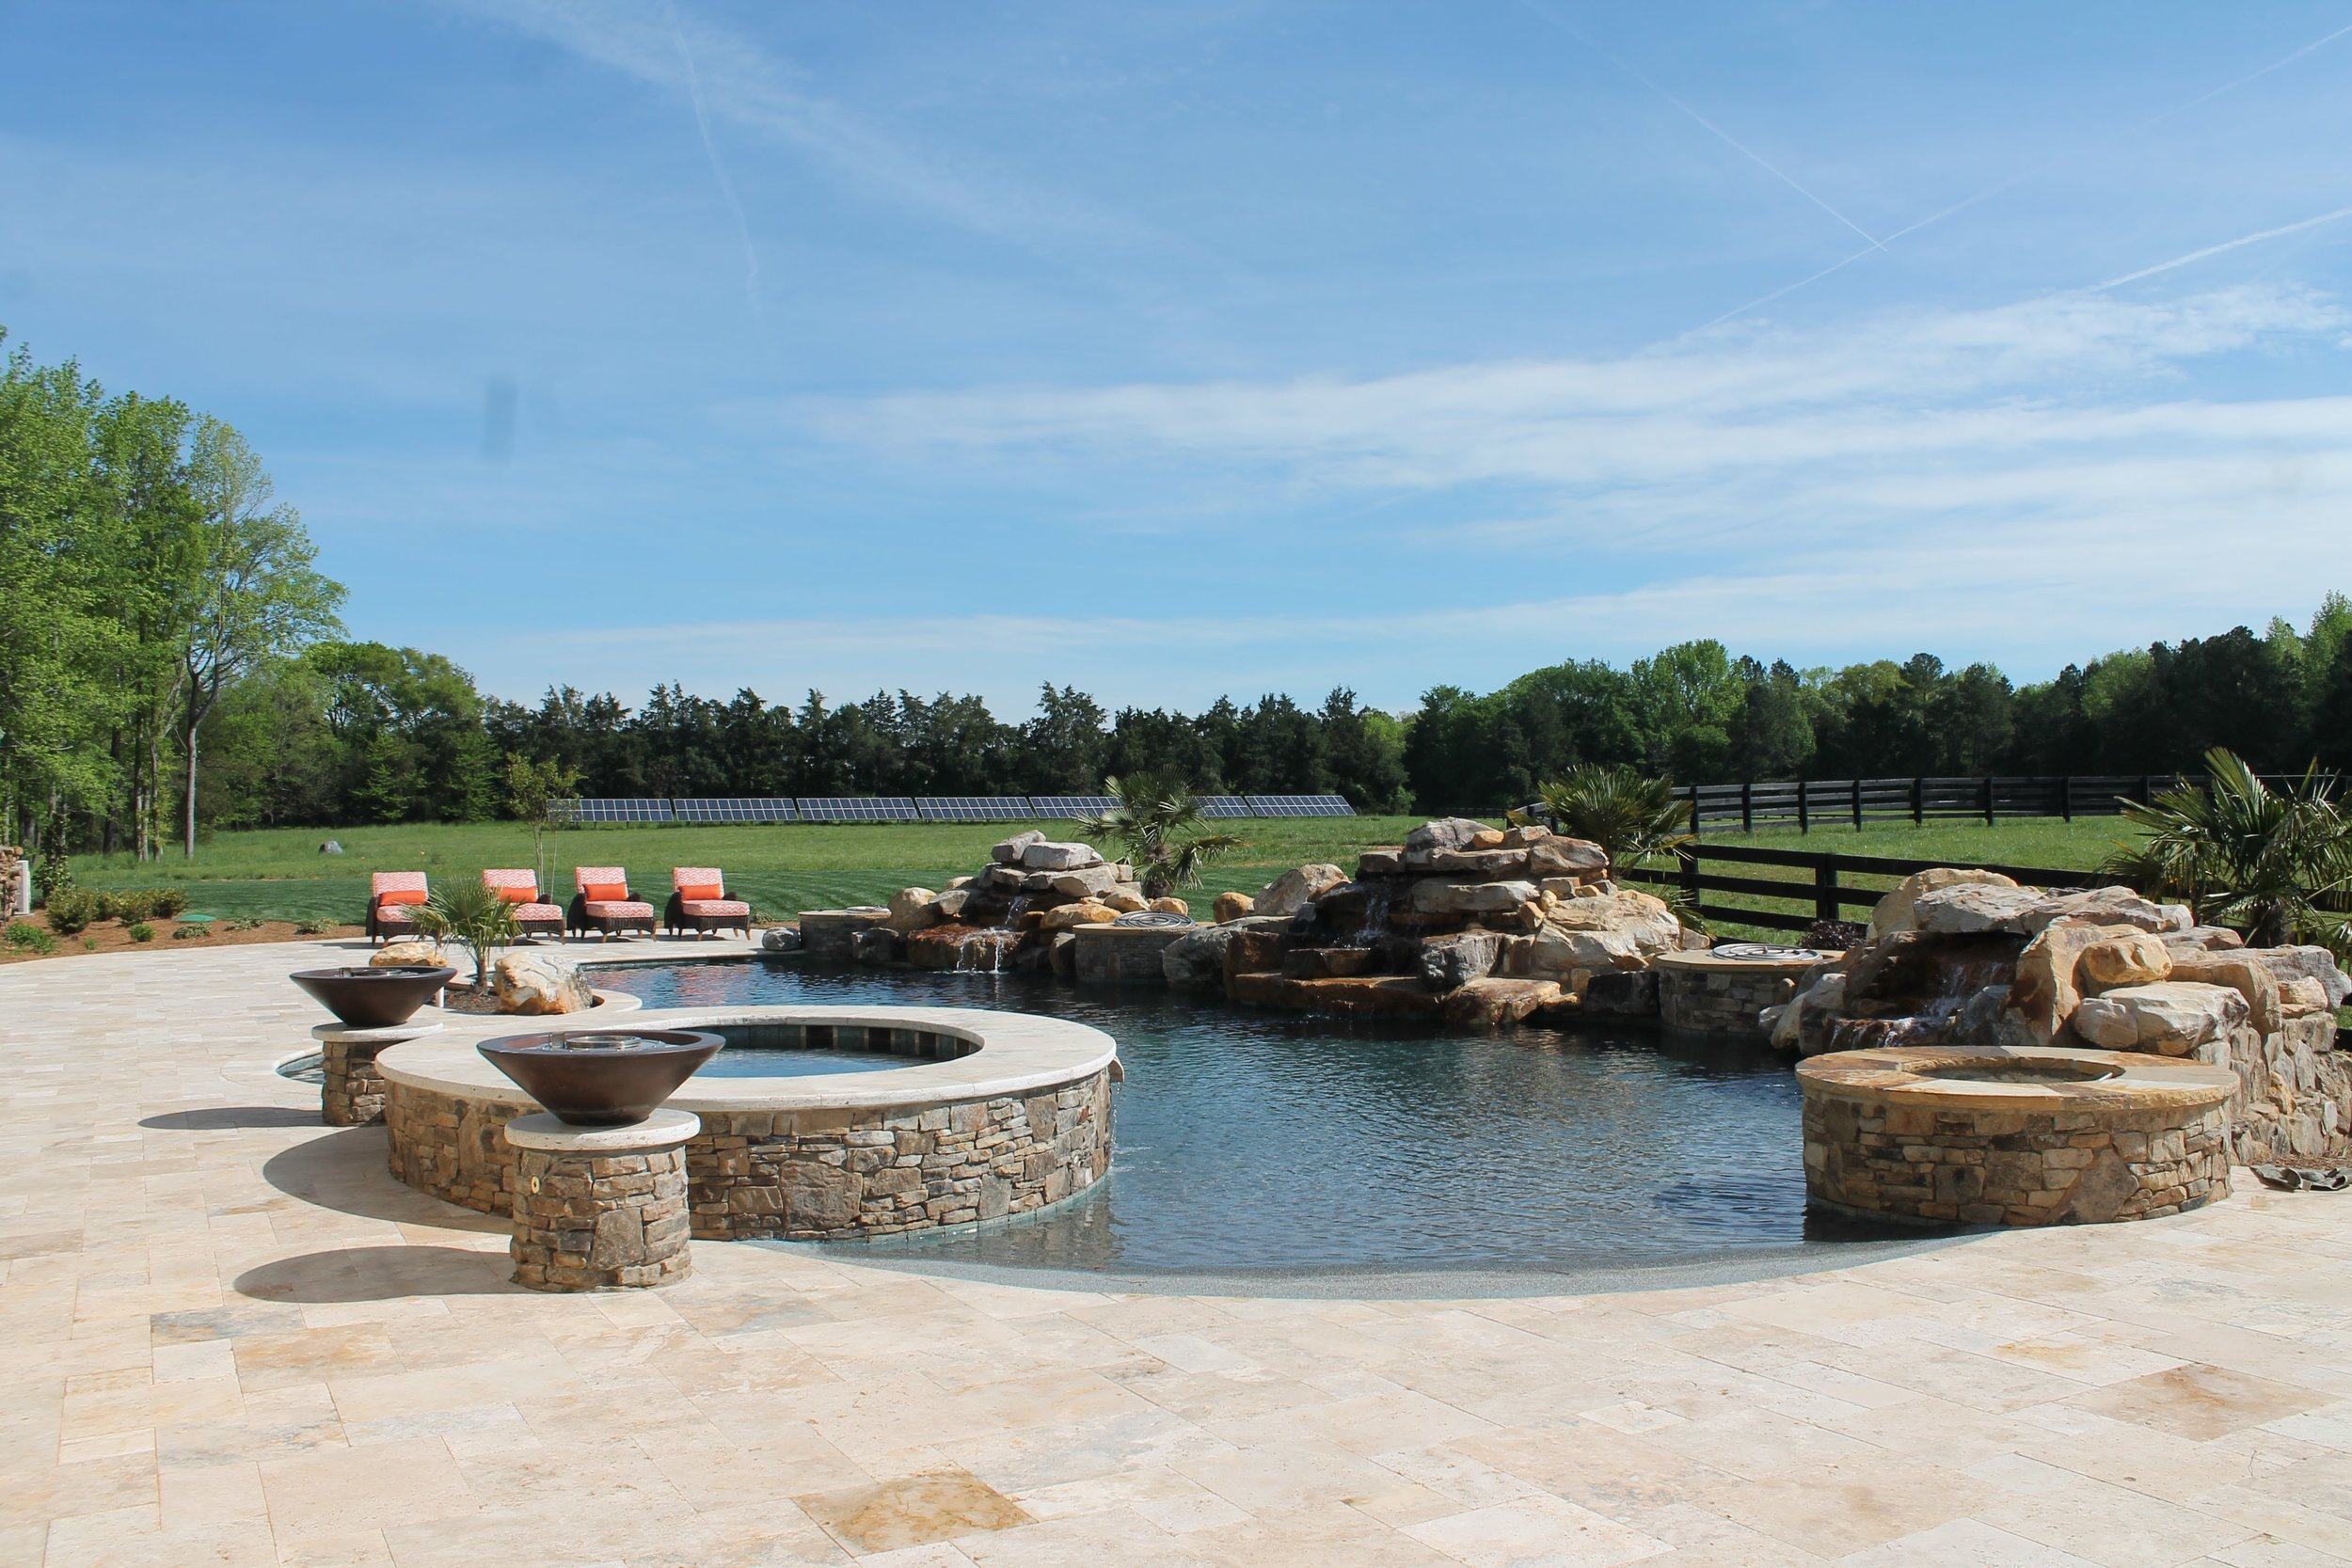 Custom salt water pool with waterfalls, large hot tub and fire bowls.